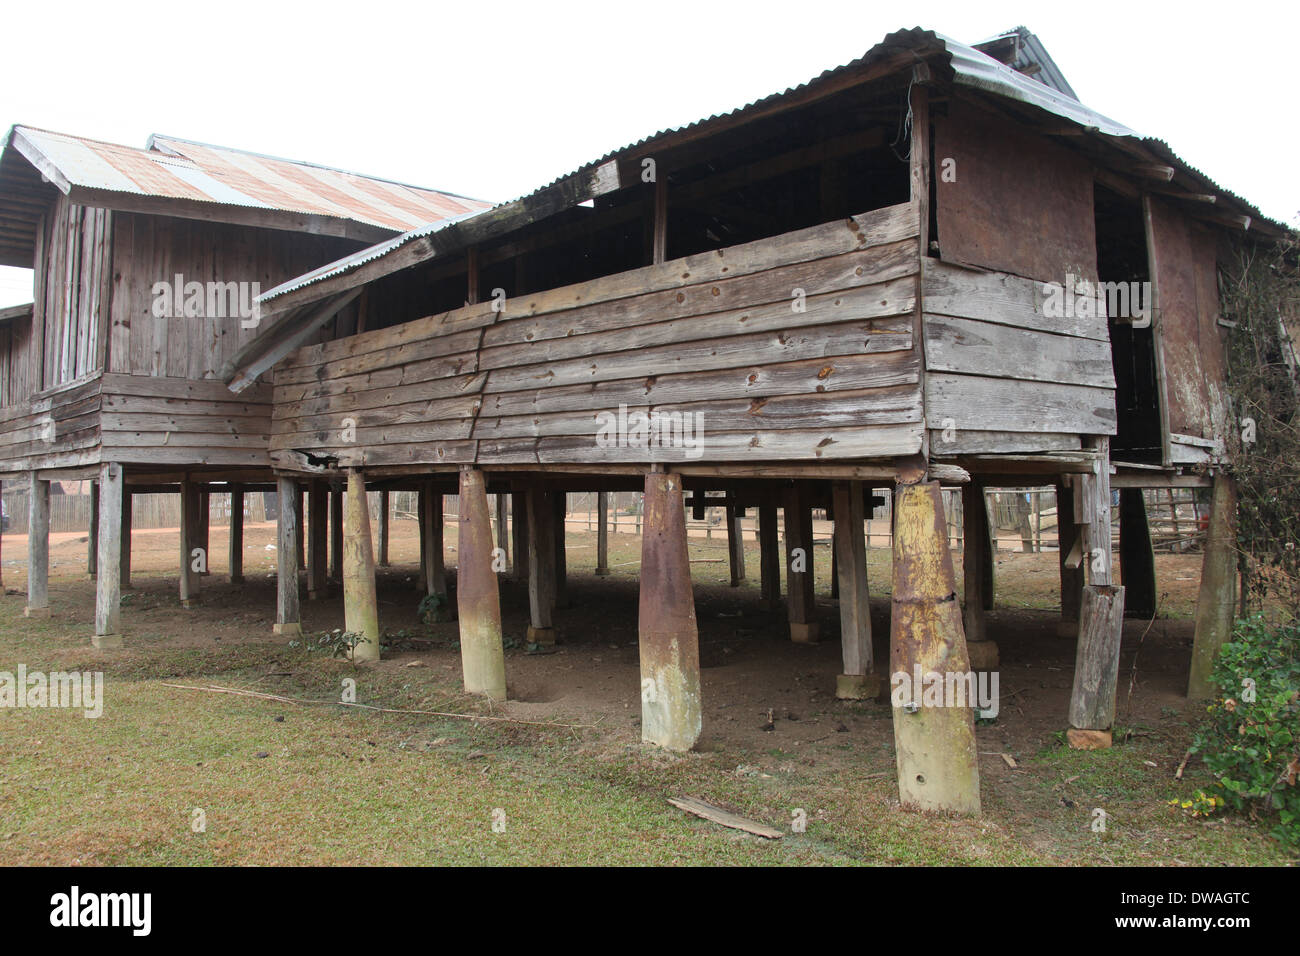 House built in rural Laos using old bombs for supports - Stock Image